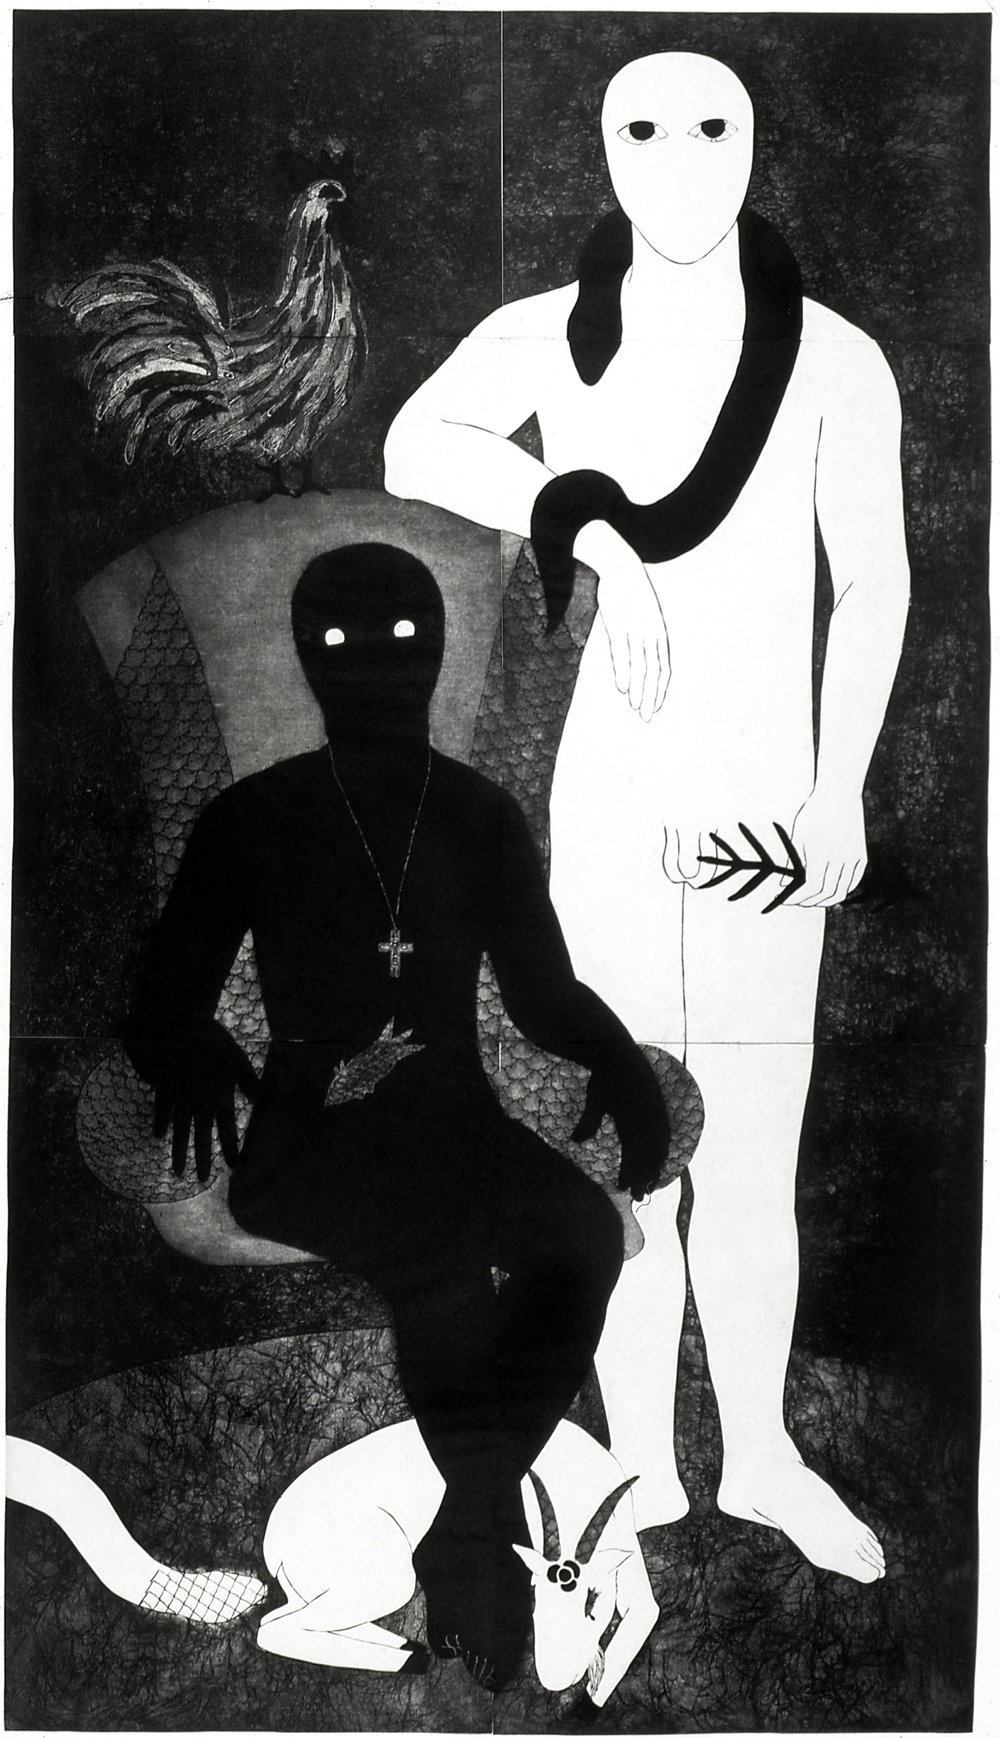 La familia, Collograph, 1991, 250 x 138 cm. Collection of the Belkis Ayón Estate. © Estate of Belkis Ayon. Courtesy of Landau Traveling Exhibitions.